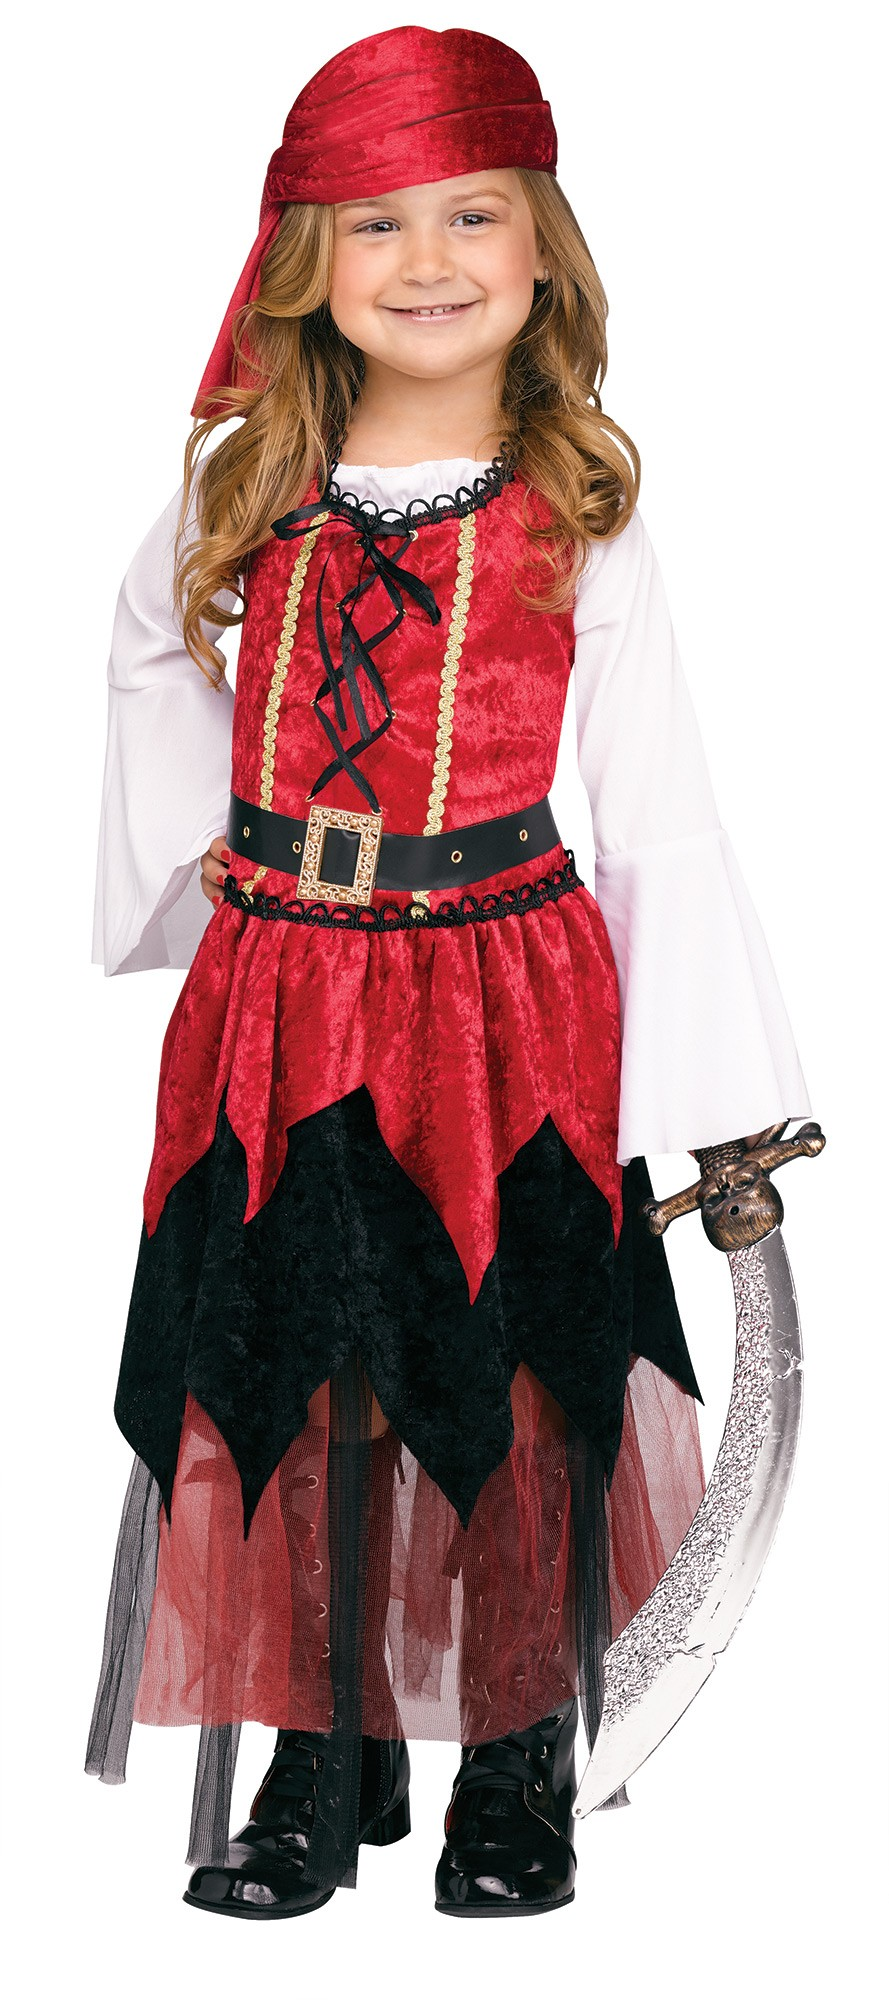 Toddler Little Girls Pirate Princess Costume 3T-4T by In Fashion Kids